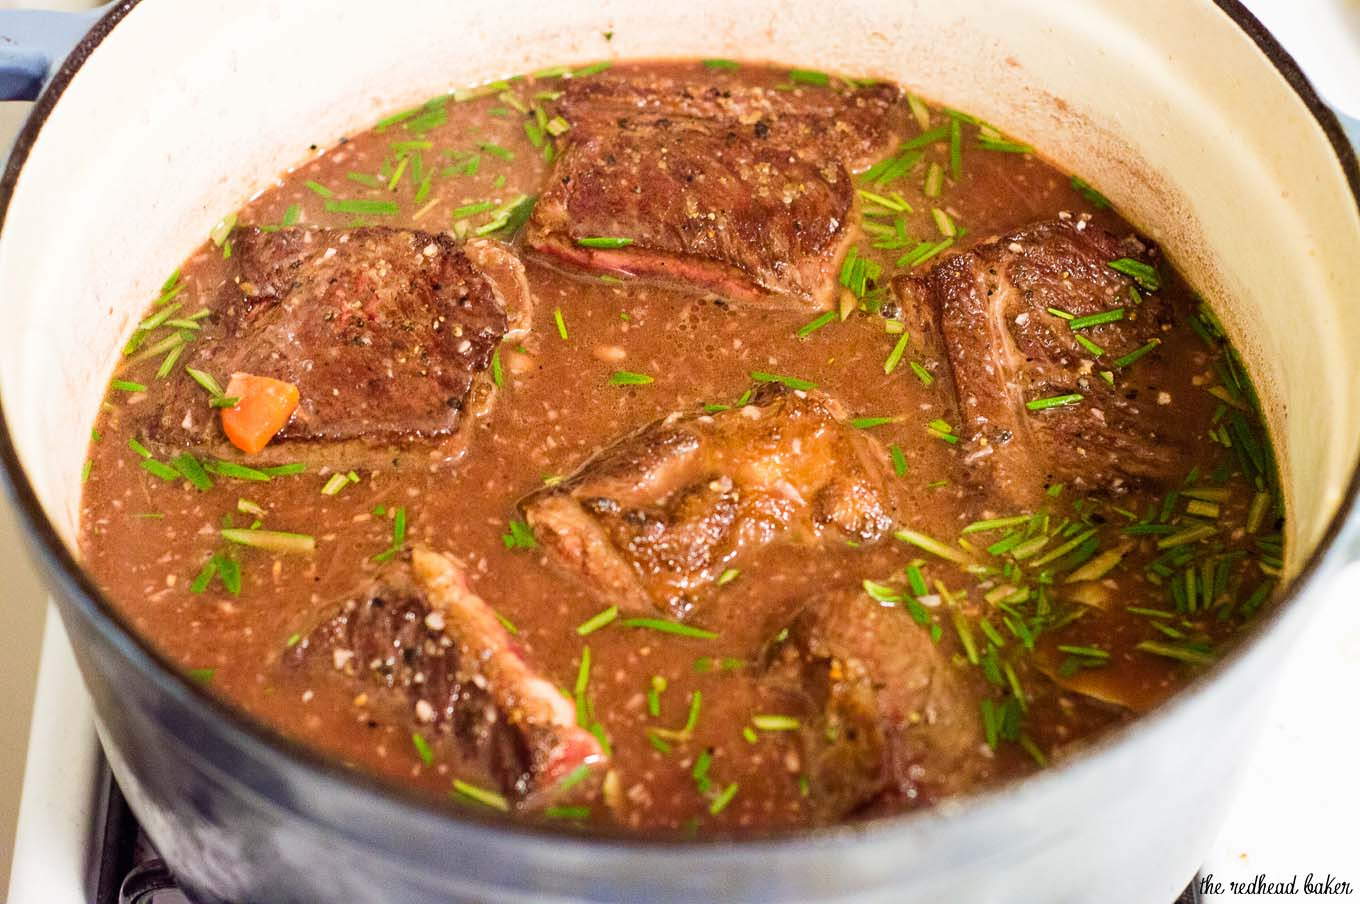 Braised short ribs become fall-off-the-bone tender in a mixture of red wine, beef stock, and garlic. Serve over mashed potatoes for a true comfort meal.